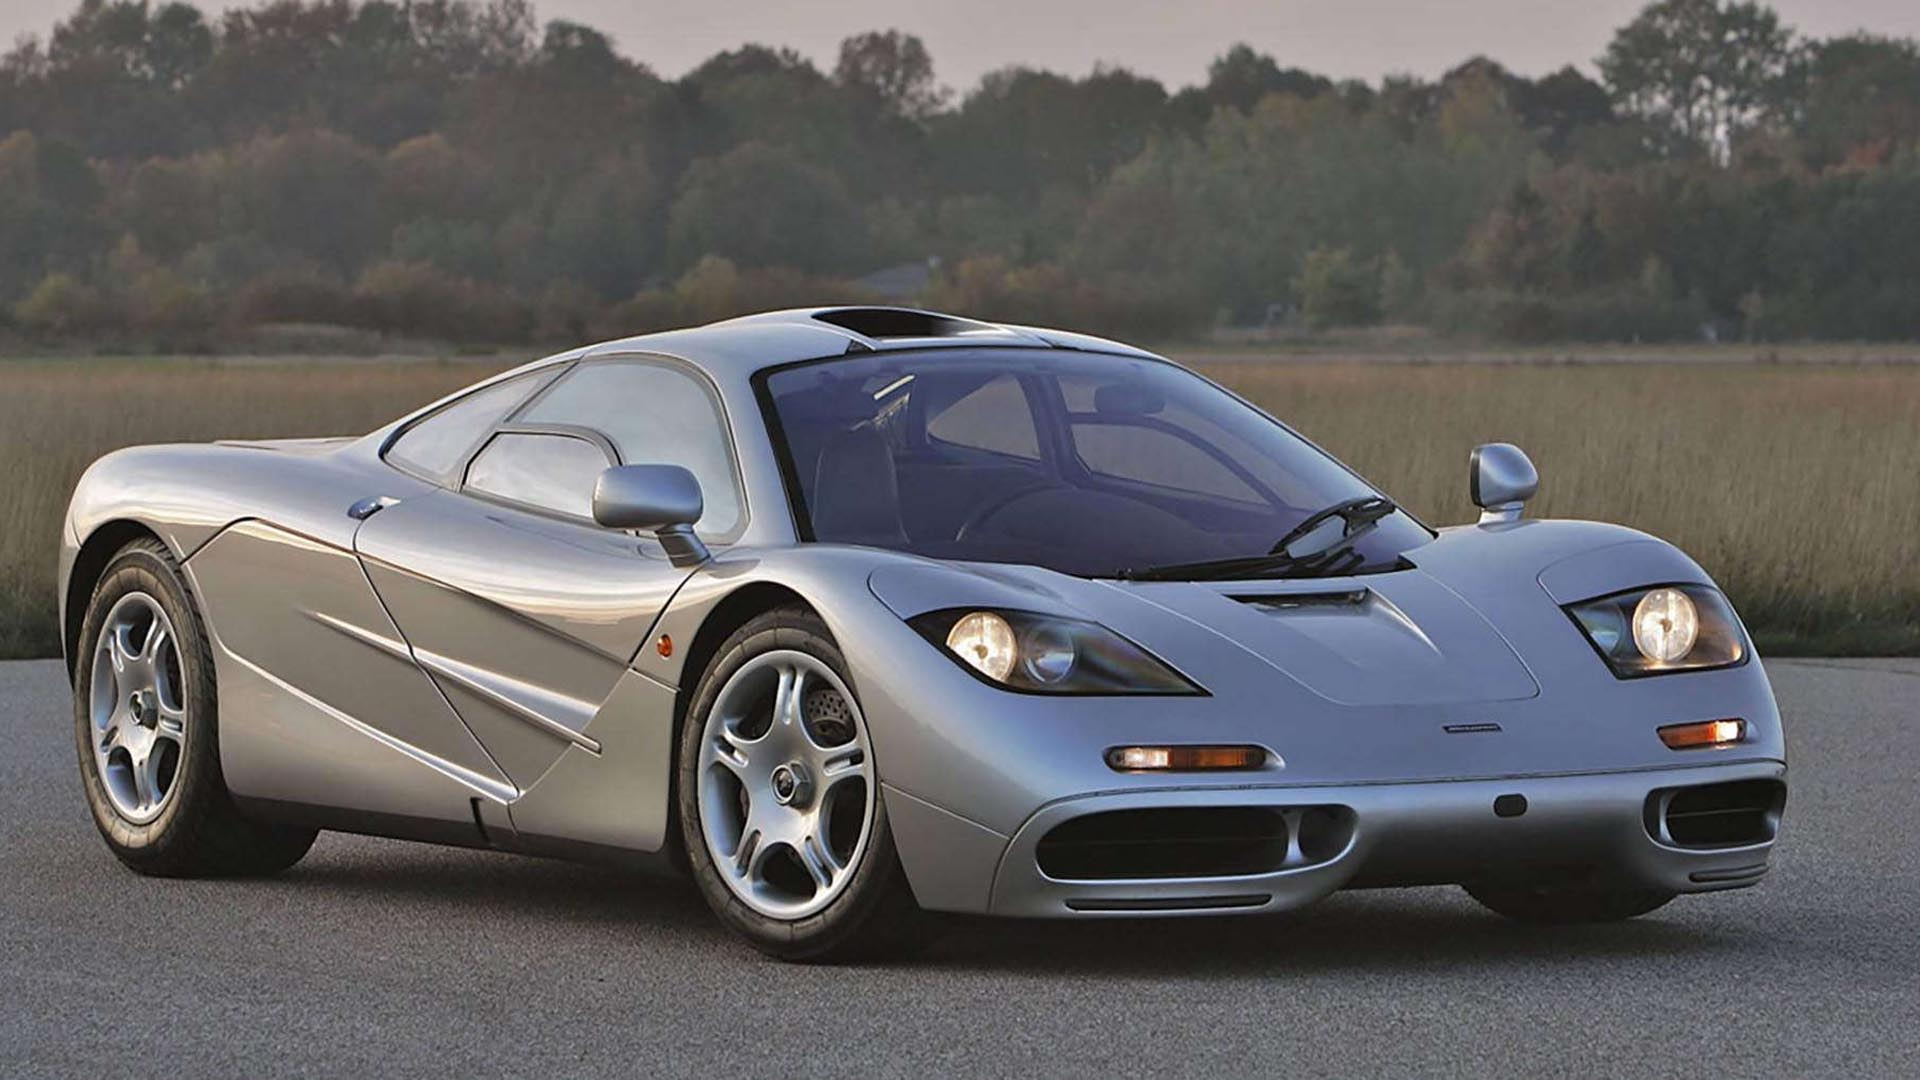 5 Of The Most Influential European Automotive Collaborations